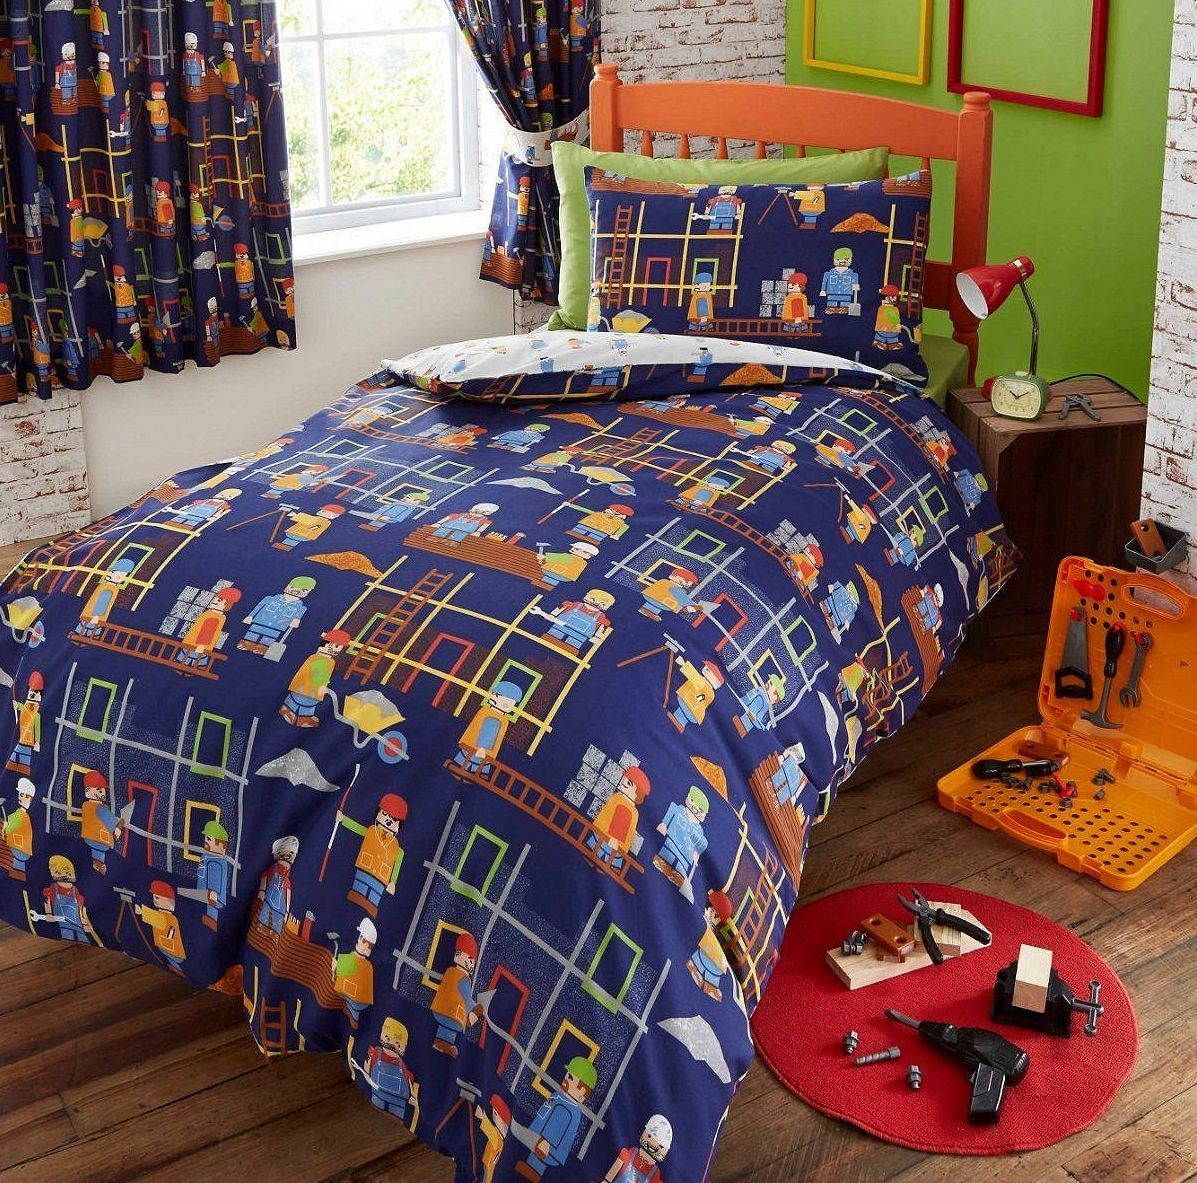 Building Site Construction Boys Bedding Crib X2f Toddler Or Twin Duvet Cover X2f Comforter Cover Set Navy With Images Single Duvet Cover Crib Bedding Boy Single Duvet